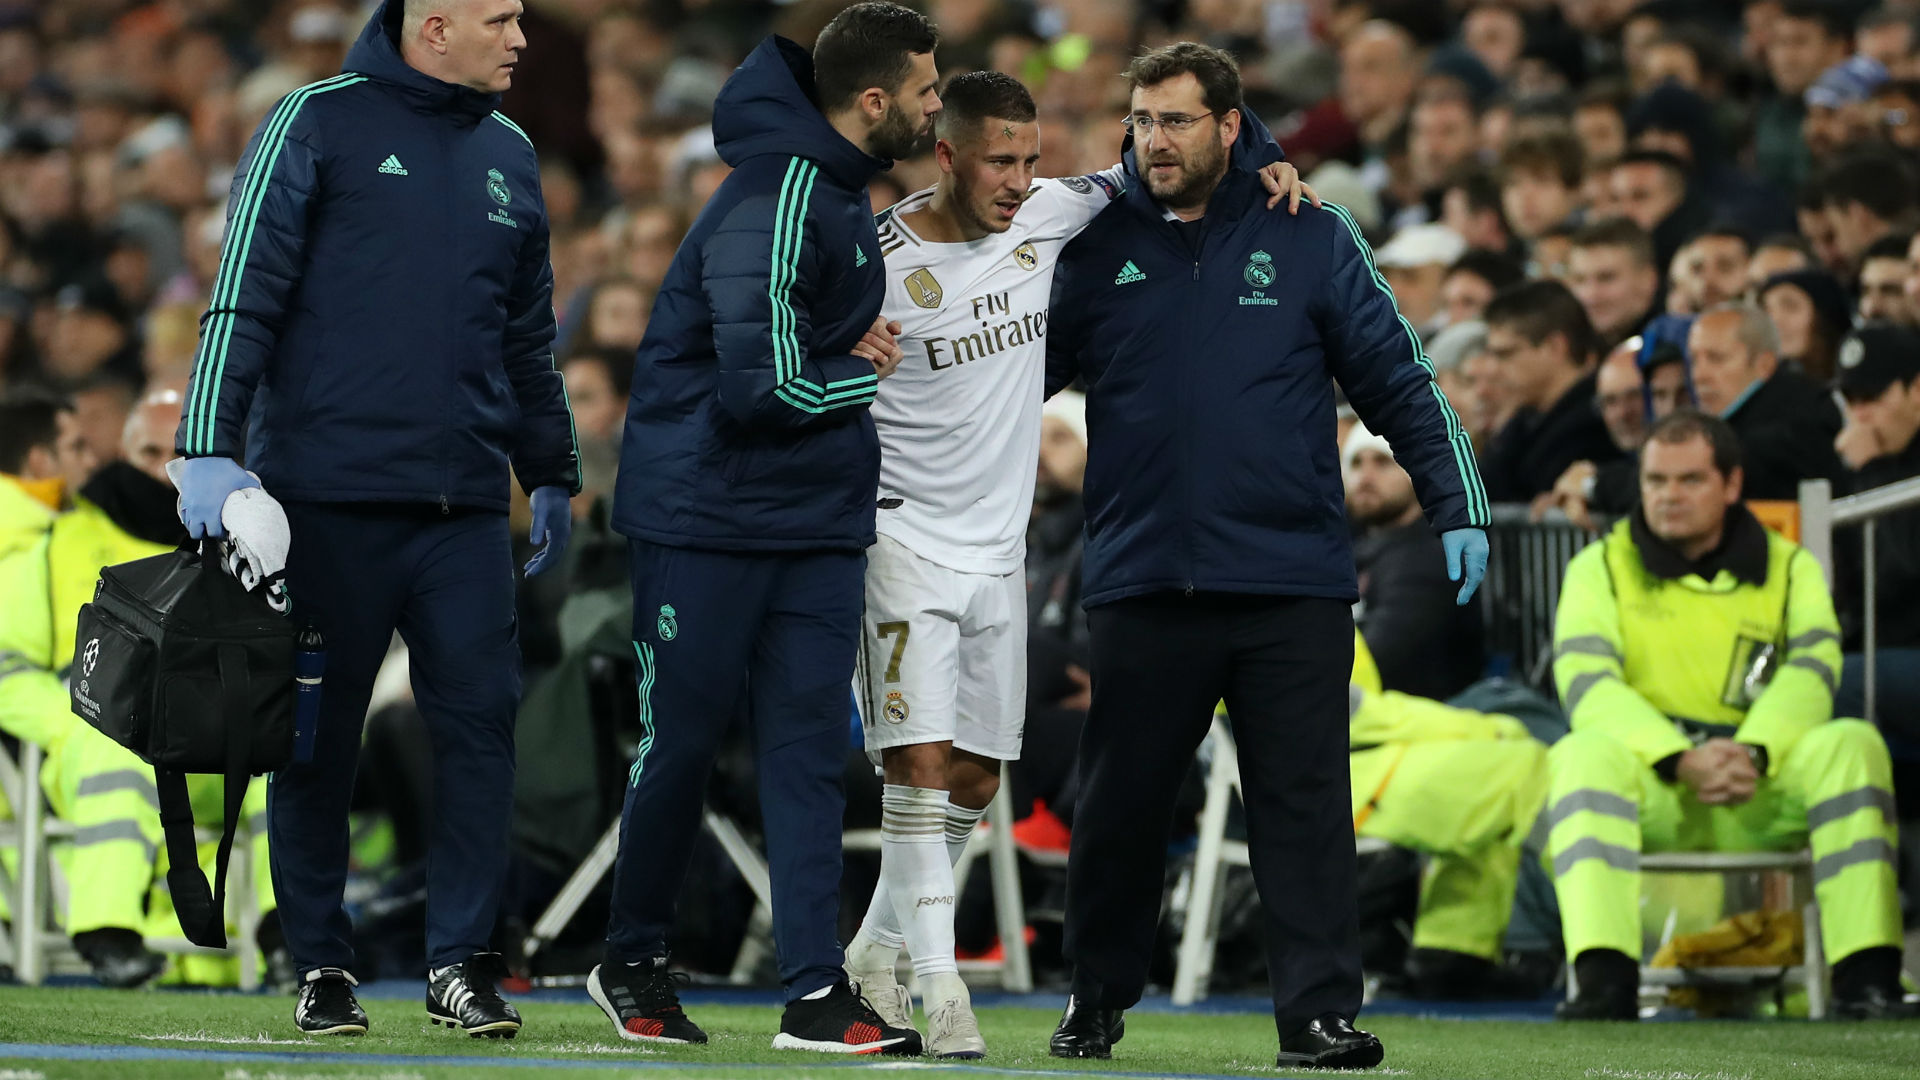 Eden Hazard wants to miss Barcelona versus Real Madrid due to injury